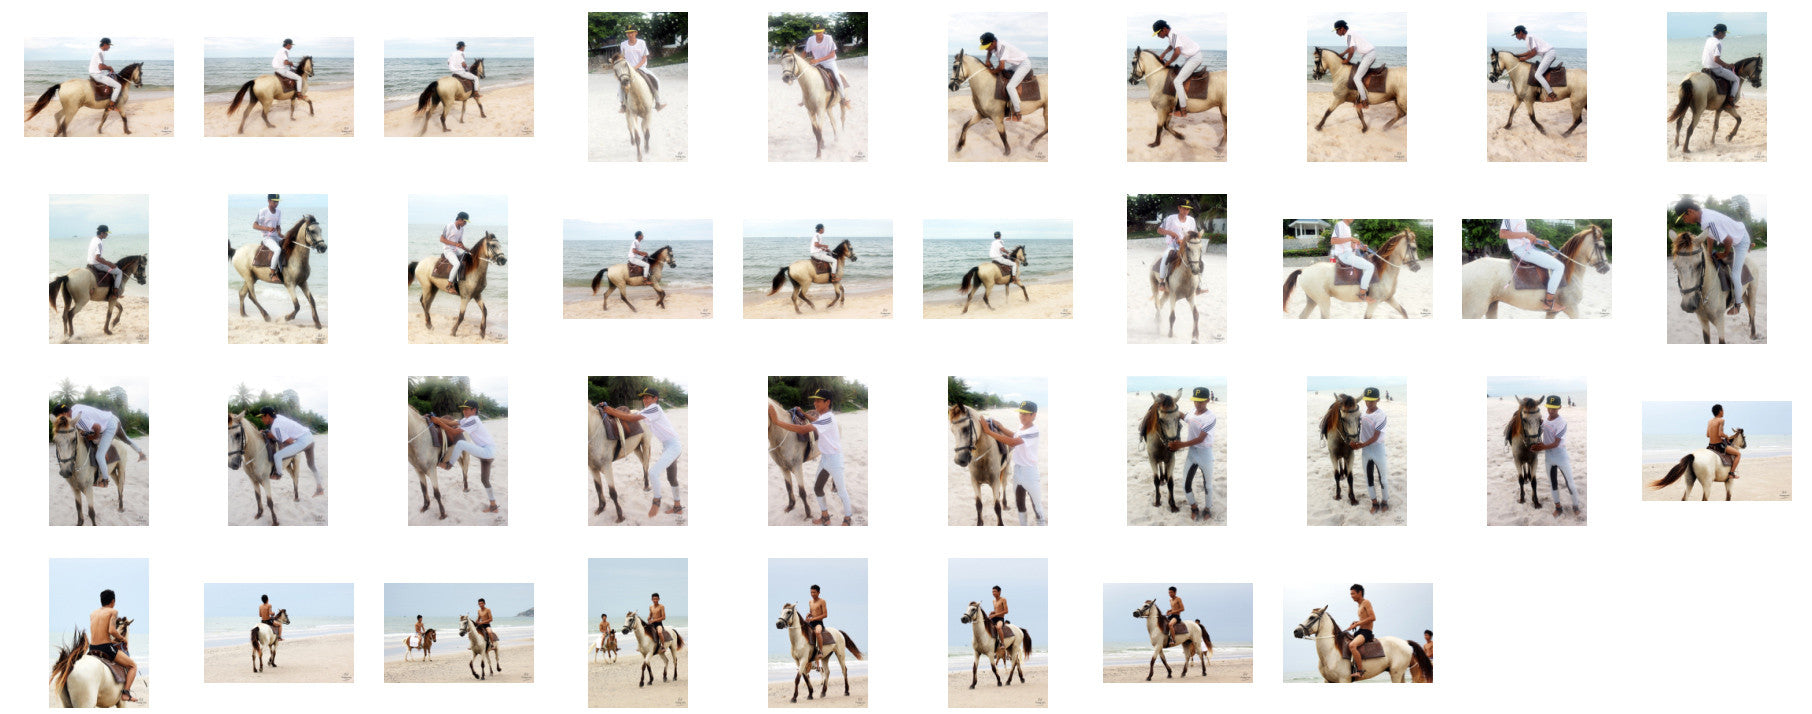 Thaksin in Jodhpurs Riding with Saddle on Buckskin Horse, Part 8 - Riding.Vision